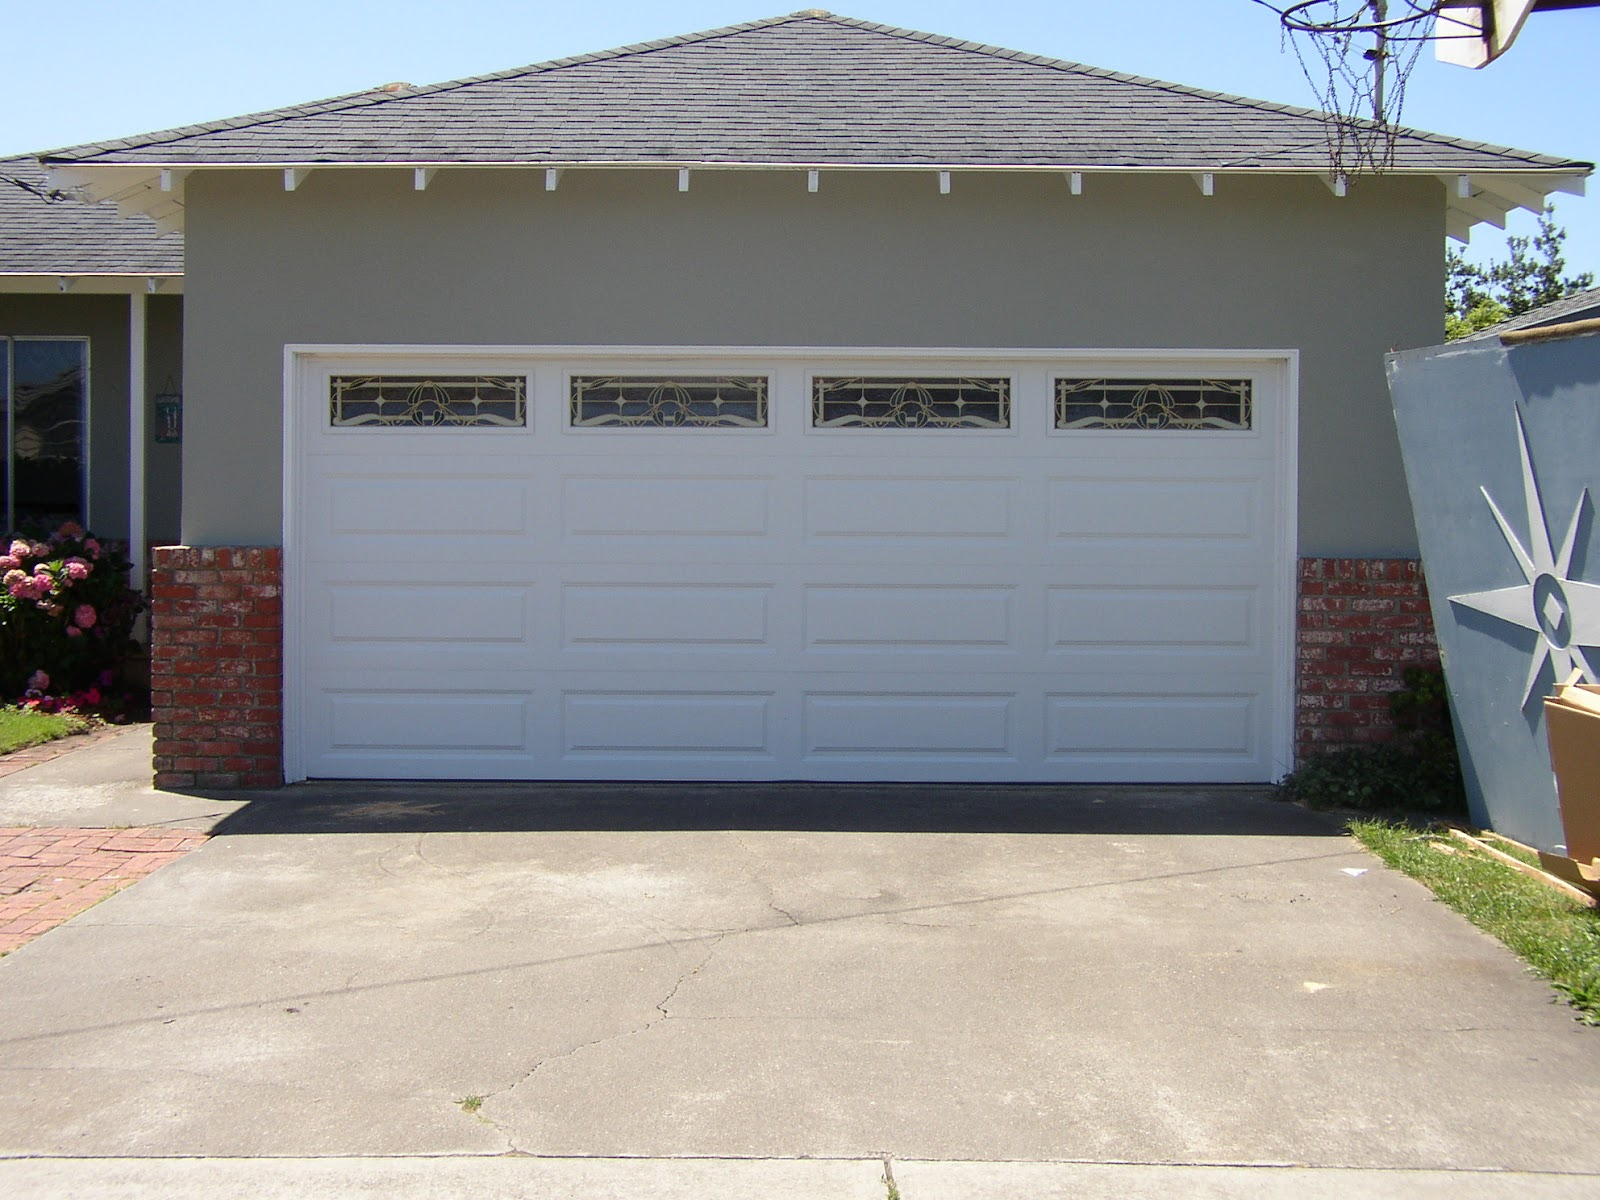 1200 #3A6991 Gainesville Garage DoorGainesville Garage Door wallpaper Grarage Doors 38151600